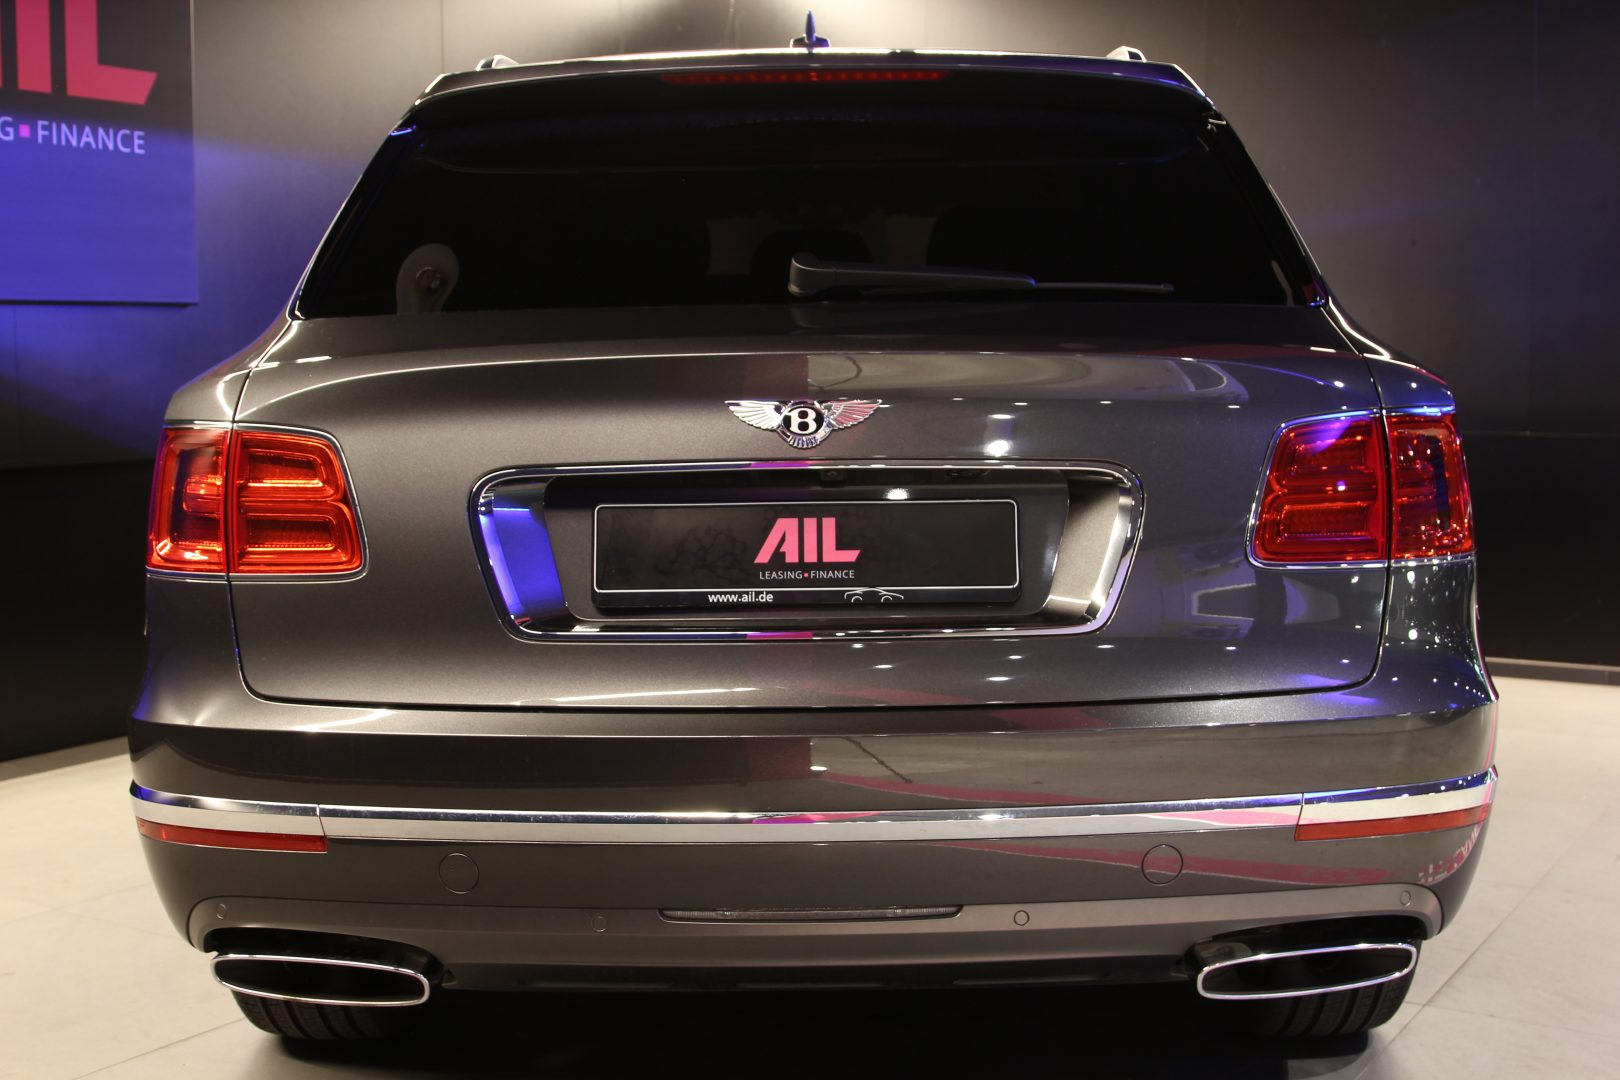 AIL Bentley Bentayga V12 Bi-Turbo RSE Panorama DAB 5